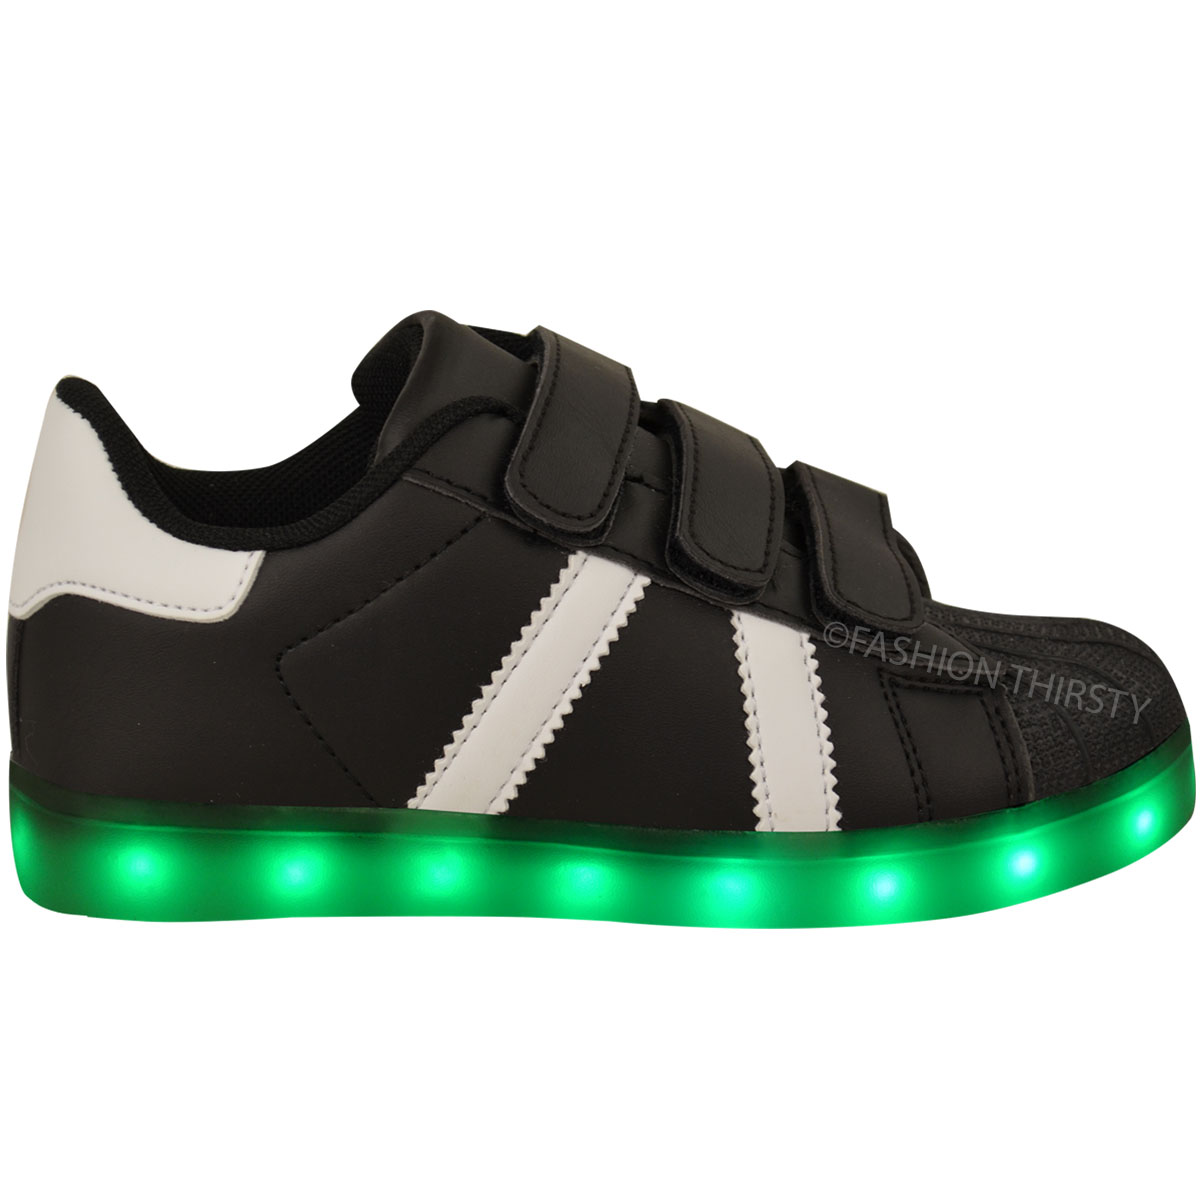 Kids Shoes With Lights Amazon